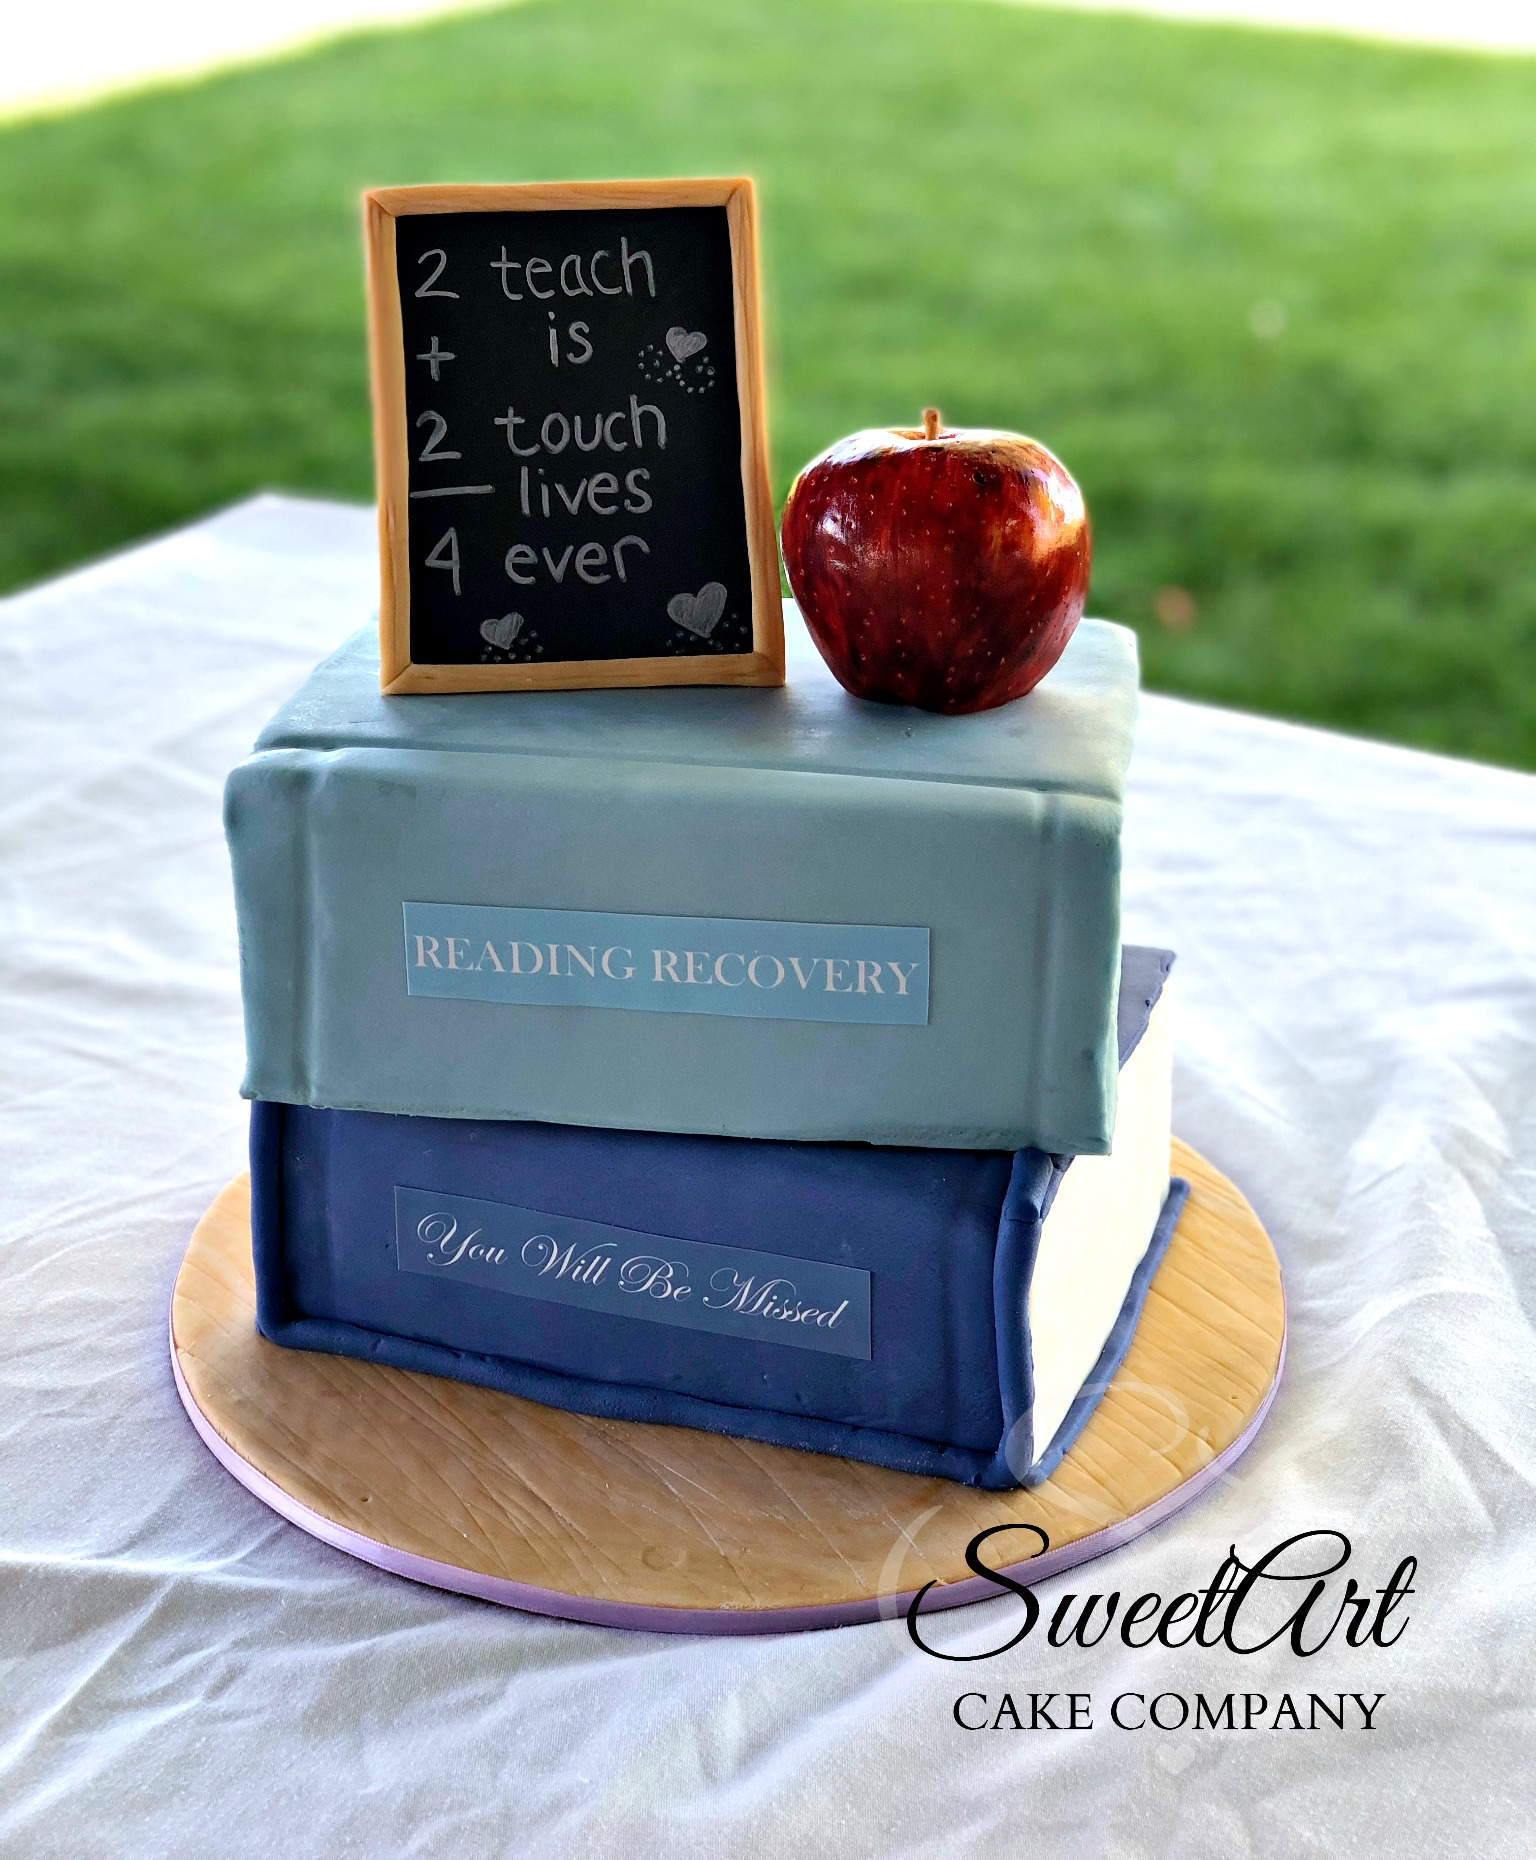 Book and Apple Teacher Retirement